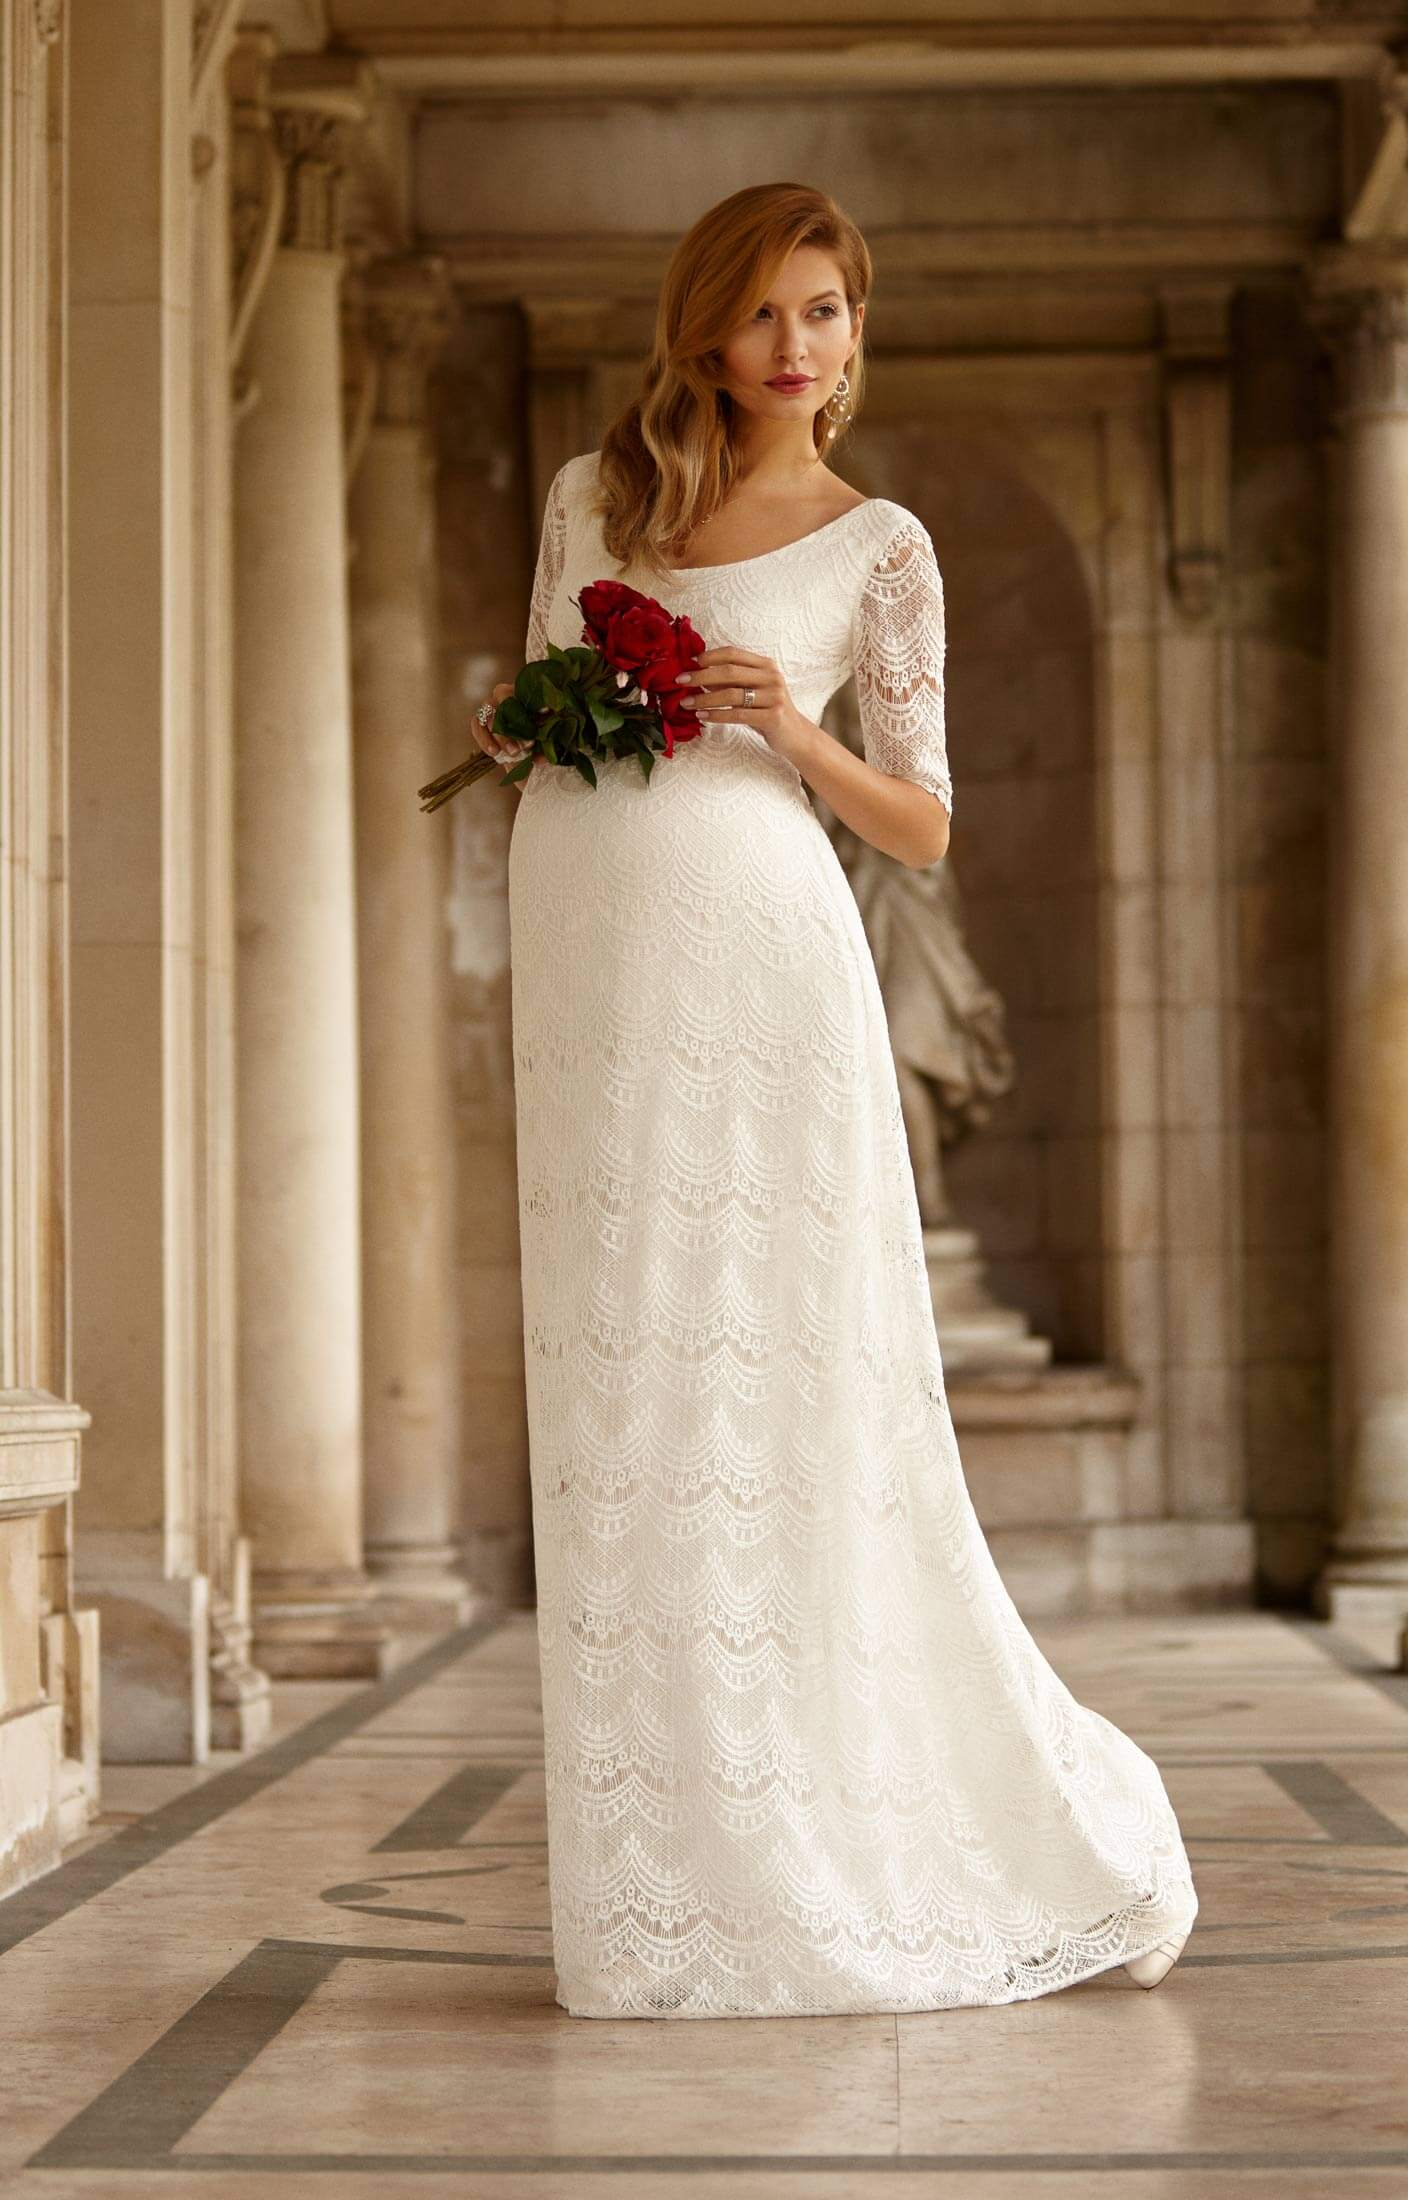 Verona Maternity Wedding Gown (Ivory) - Maternity Wedding Dresses ...